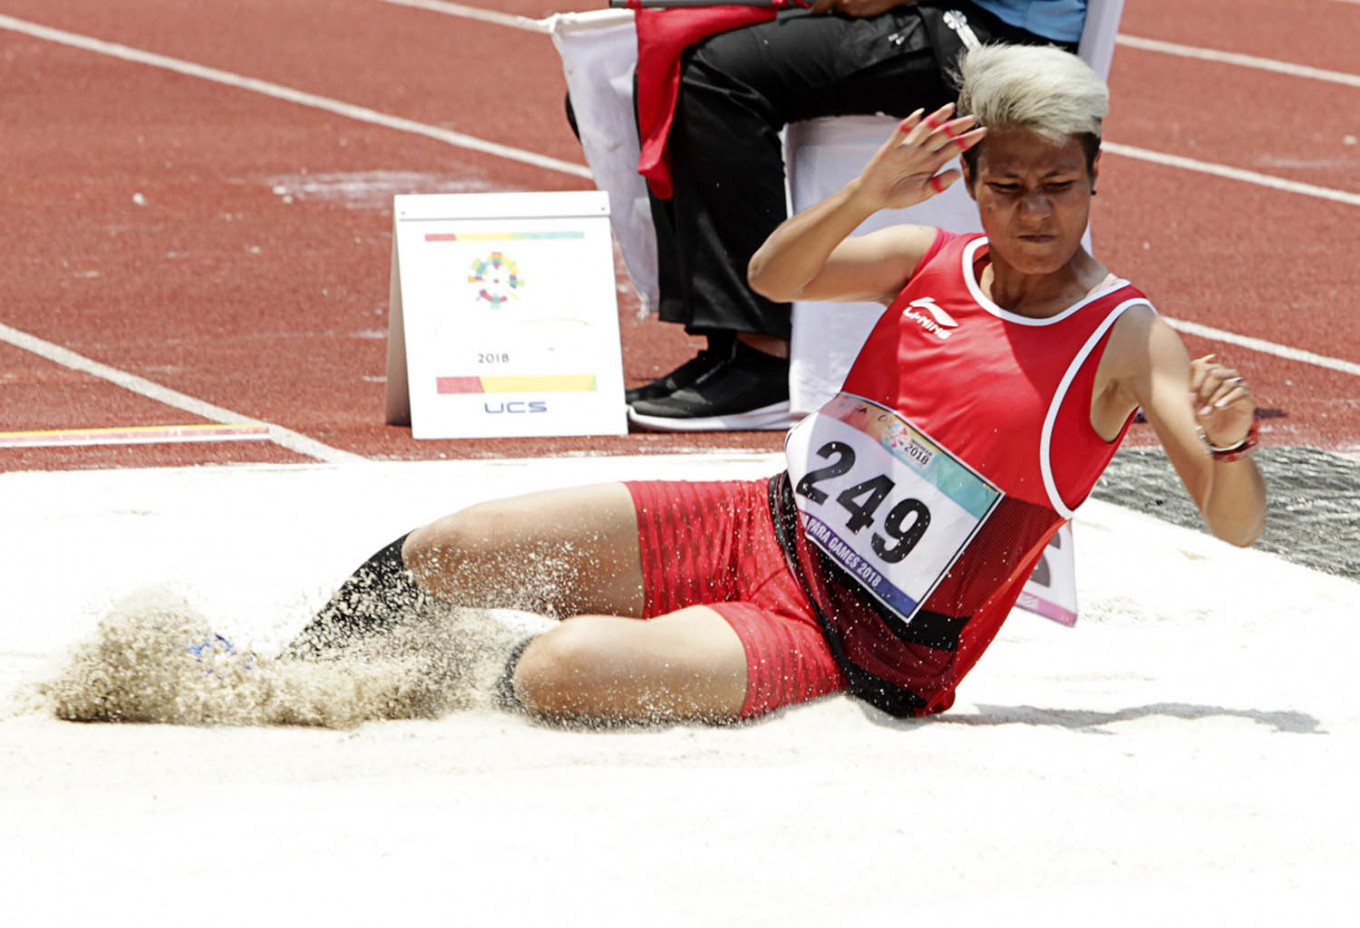 Sliding through: Indonesian long jump athlete Rica Octavia lands after her jump at the Gelora Bung Karno sports complex in Senayan, Central Jakarta. INAPGOC/TJPimages/Jessica Margaretha